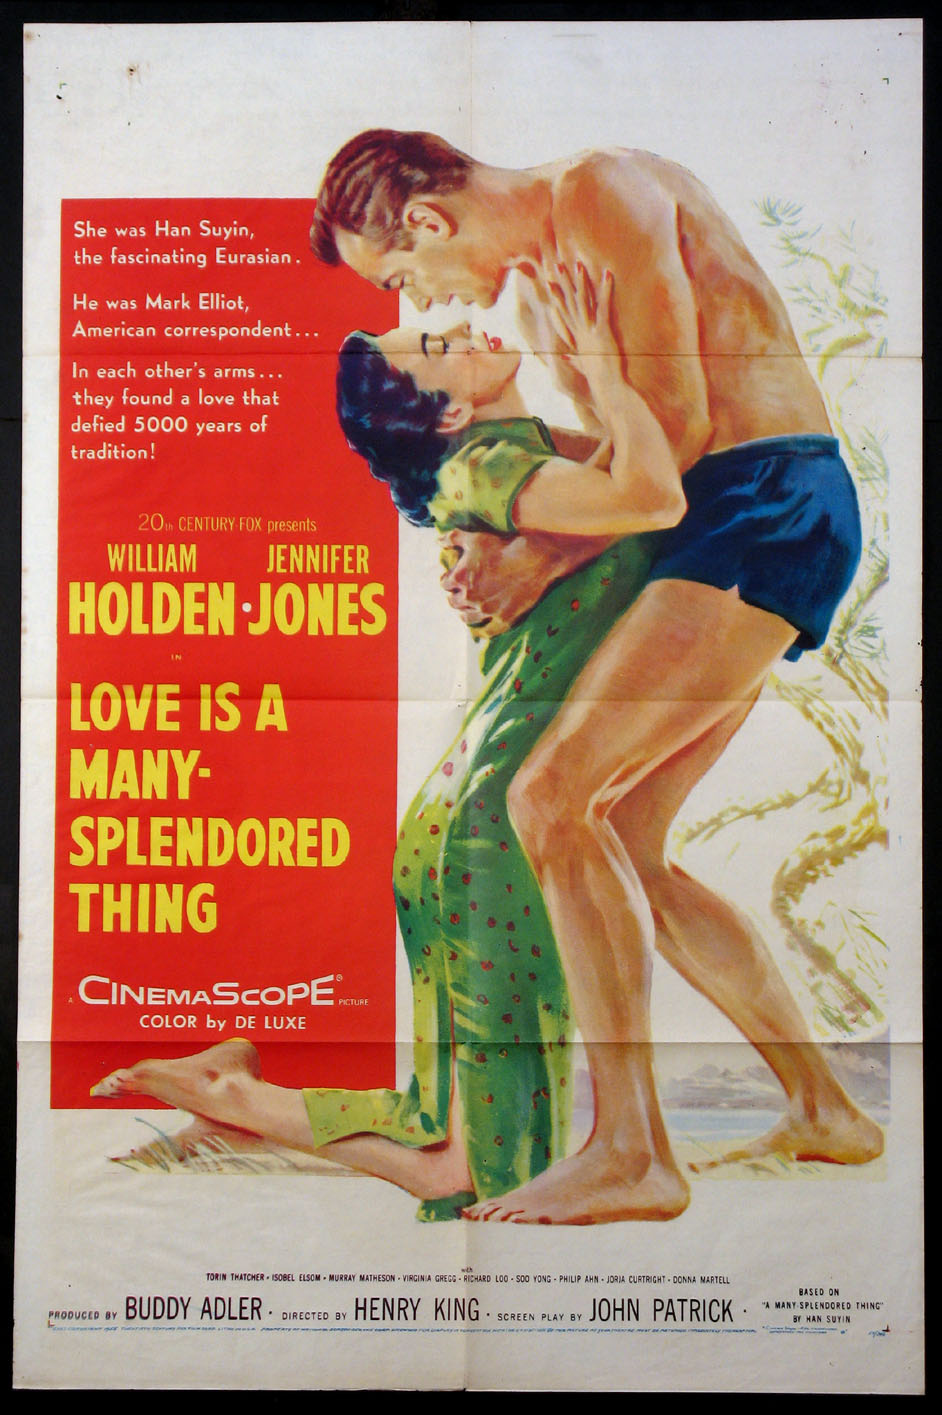 LOVE IS A MANY-SPLENDORED THING @ FilmPosters.com